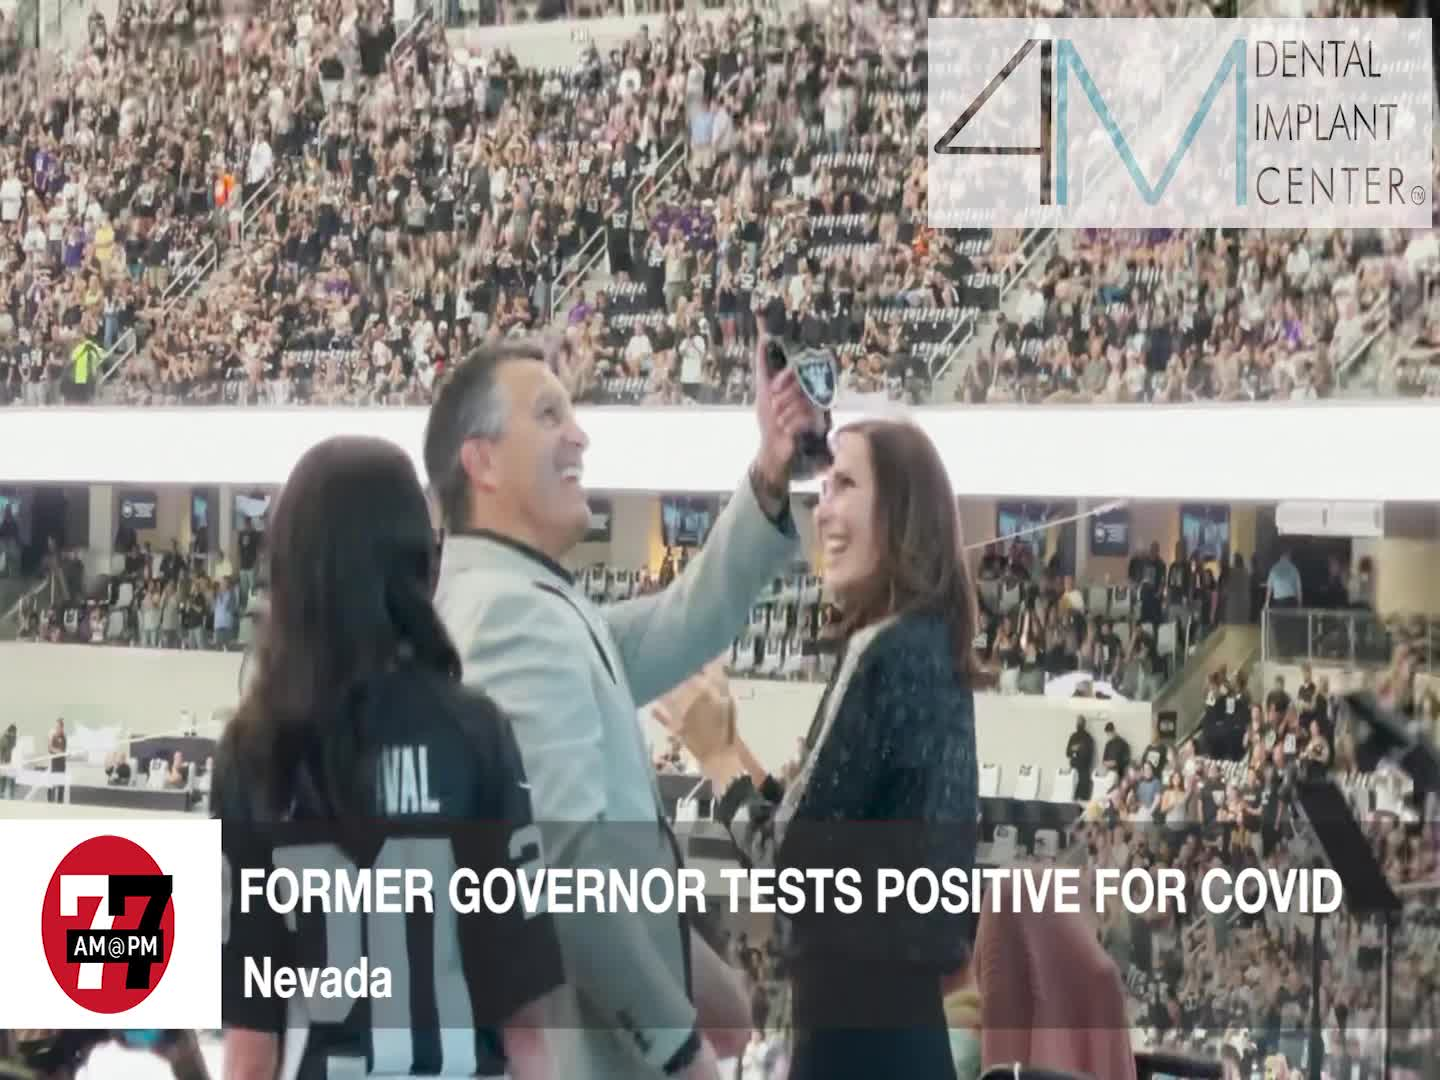 7@7PM Former Governor Tests Positive for Covid